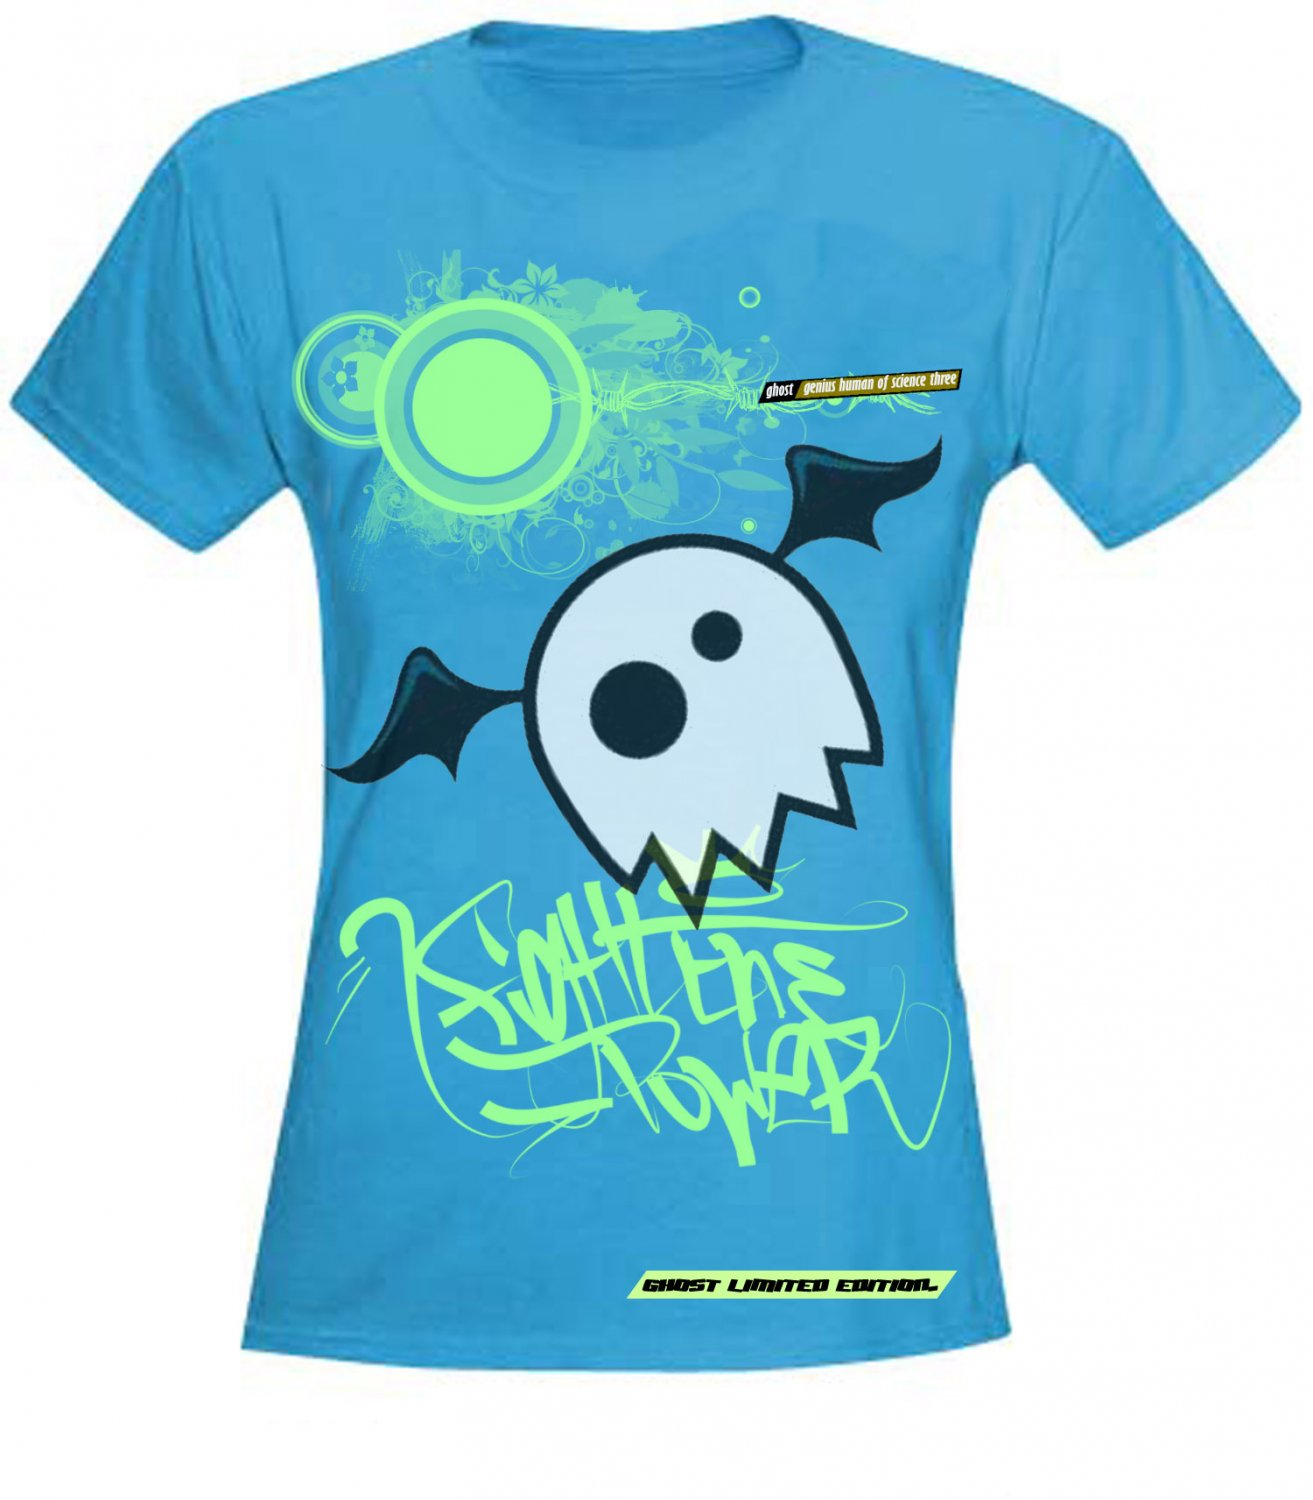 ghost t-shirt4